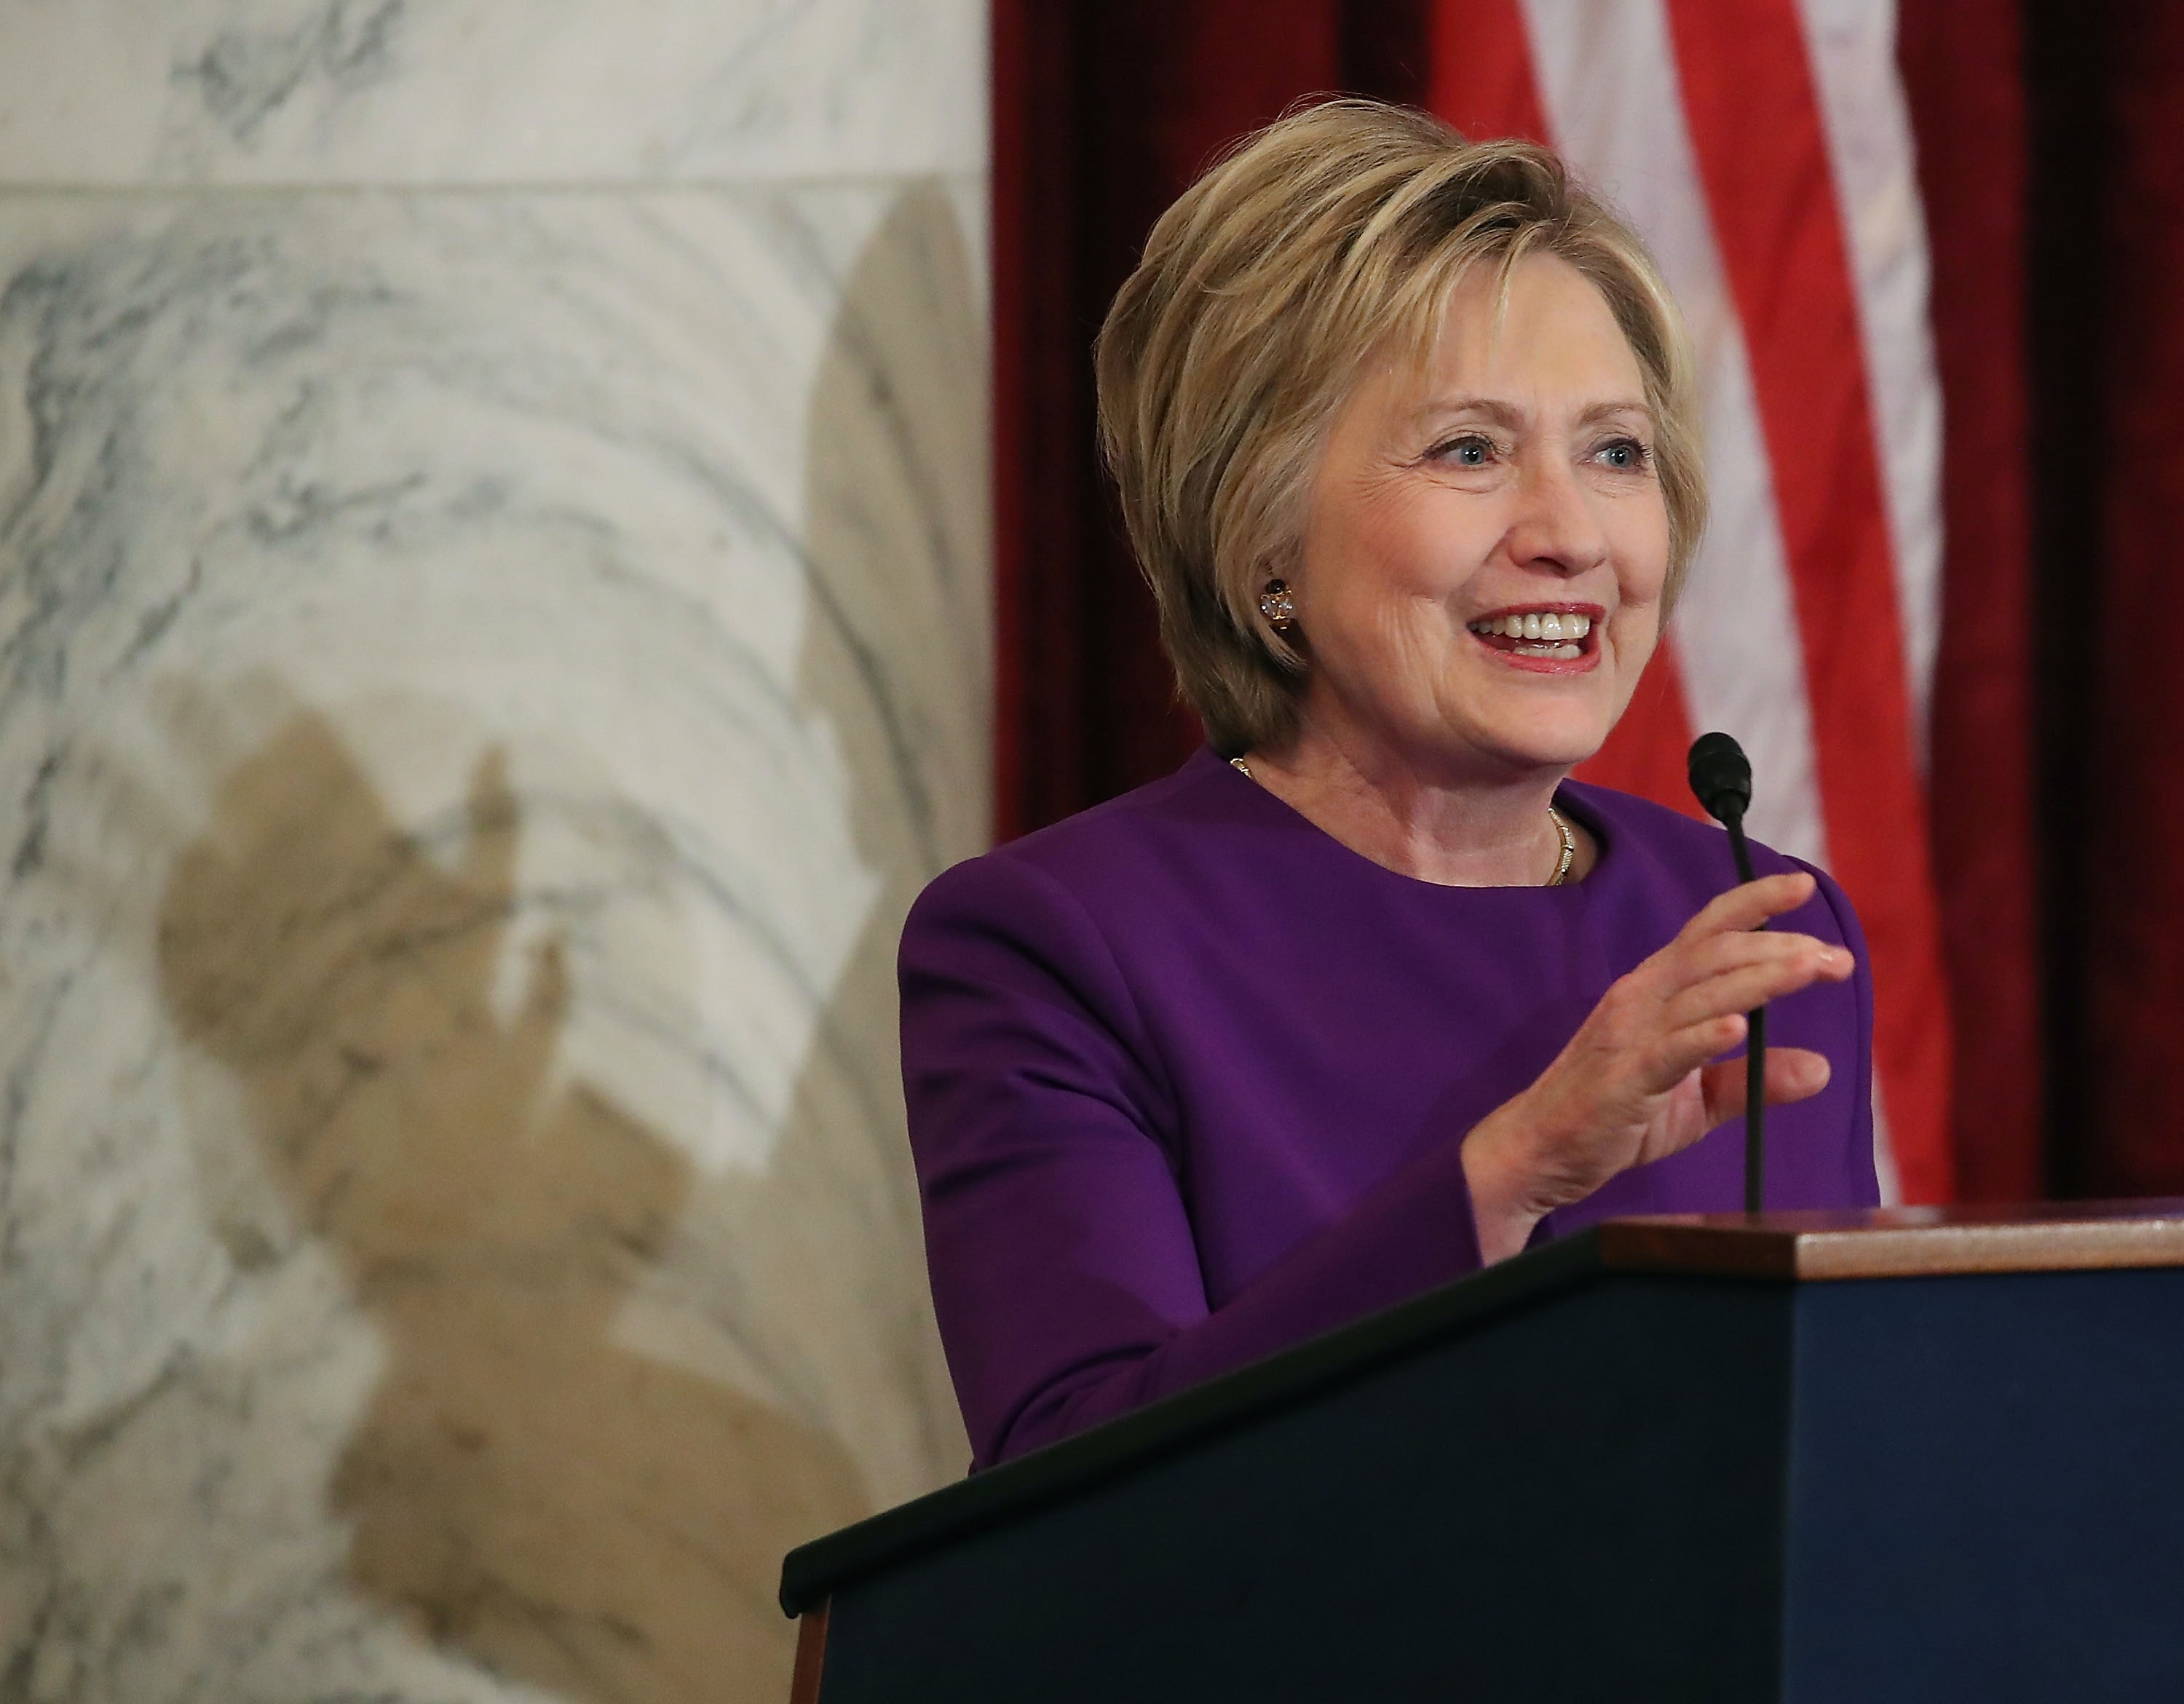 Longtime Hillary Clinton Confidante Says She Won't Run for Office Again